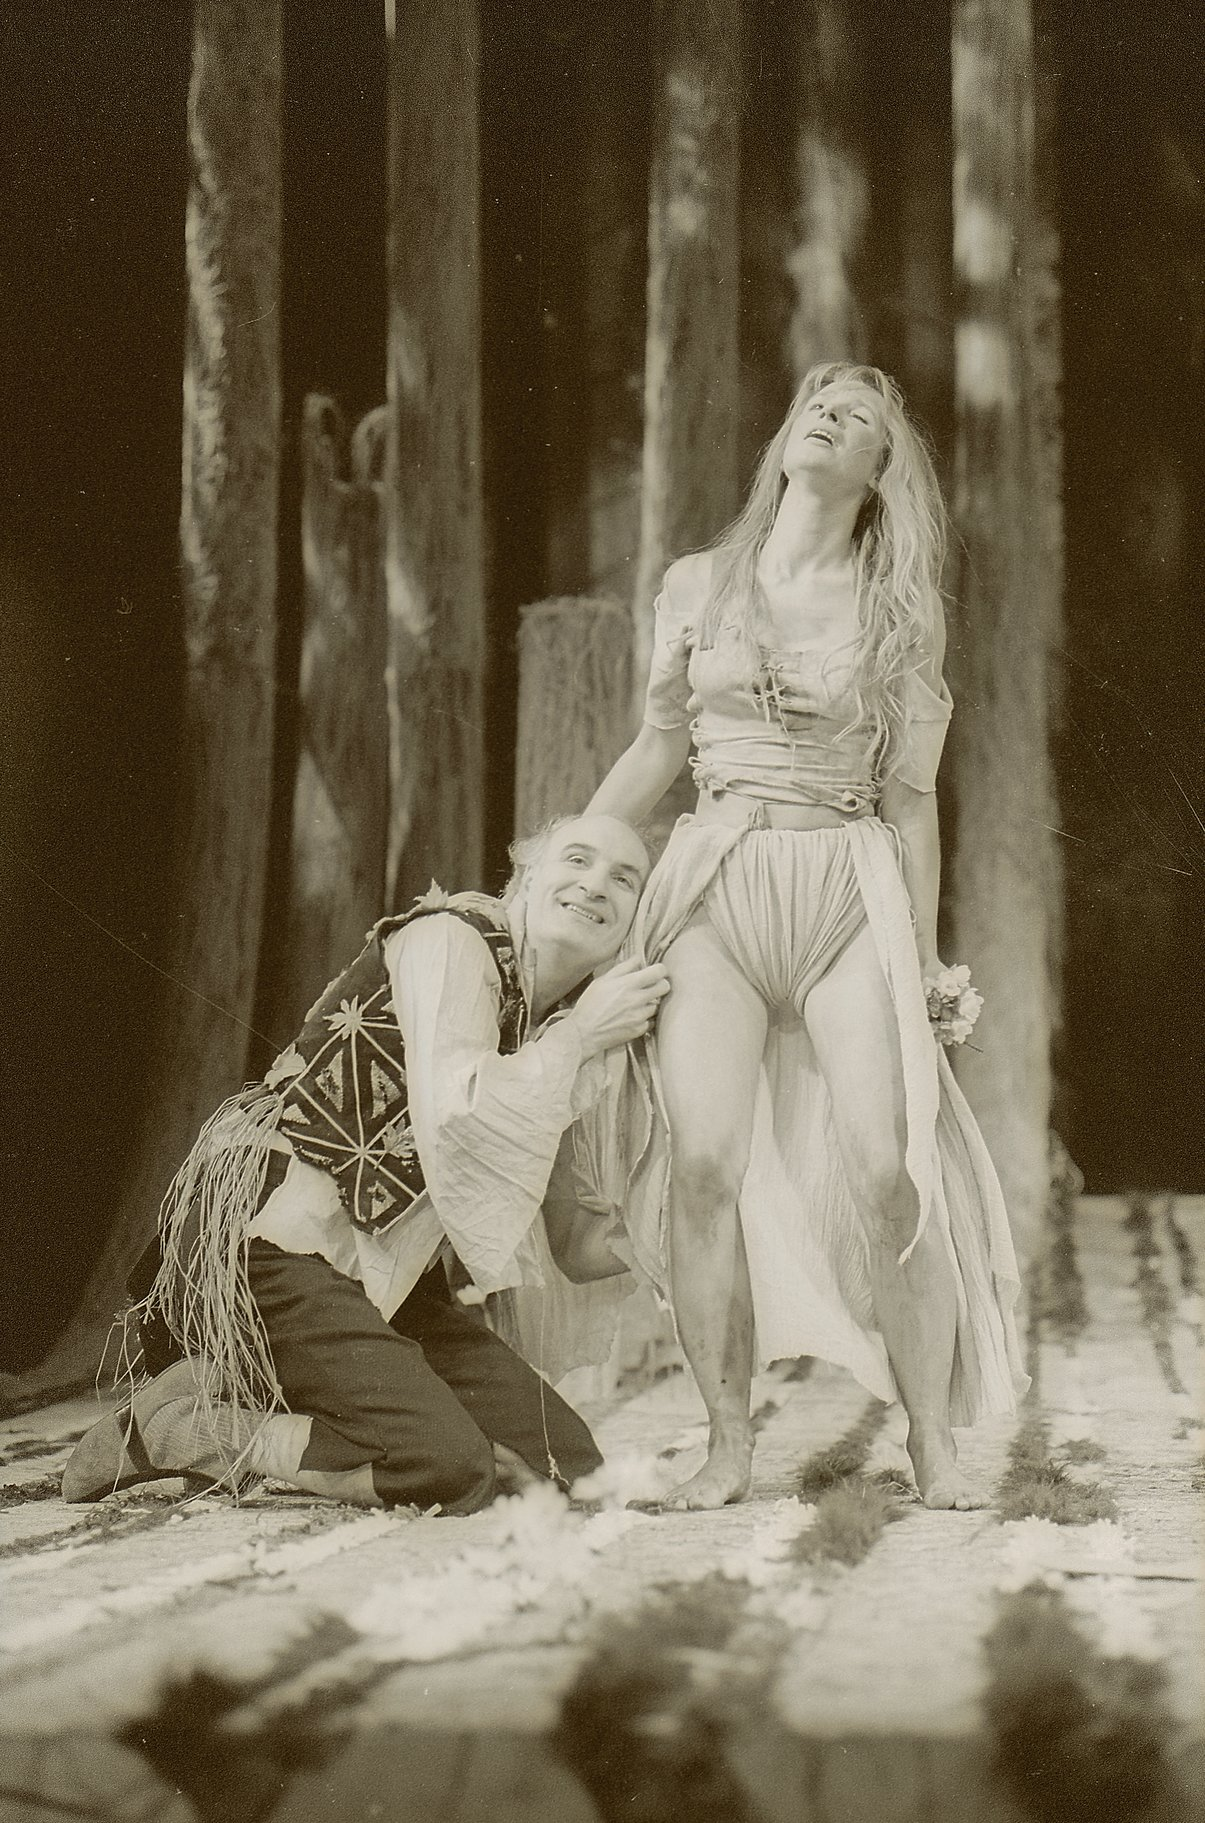 A man leans against the leg of a scantily-dressed woman.